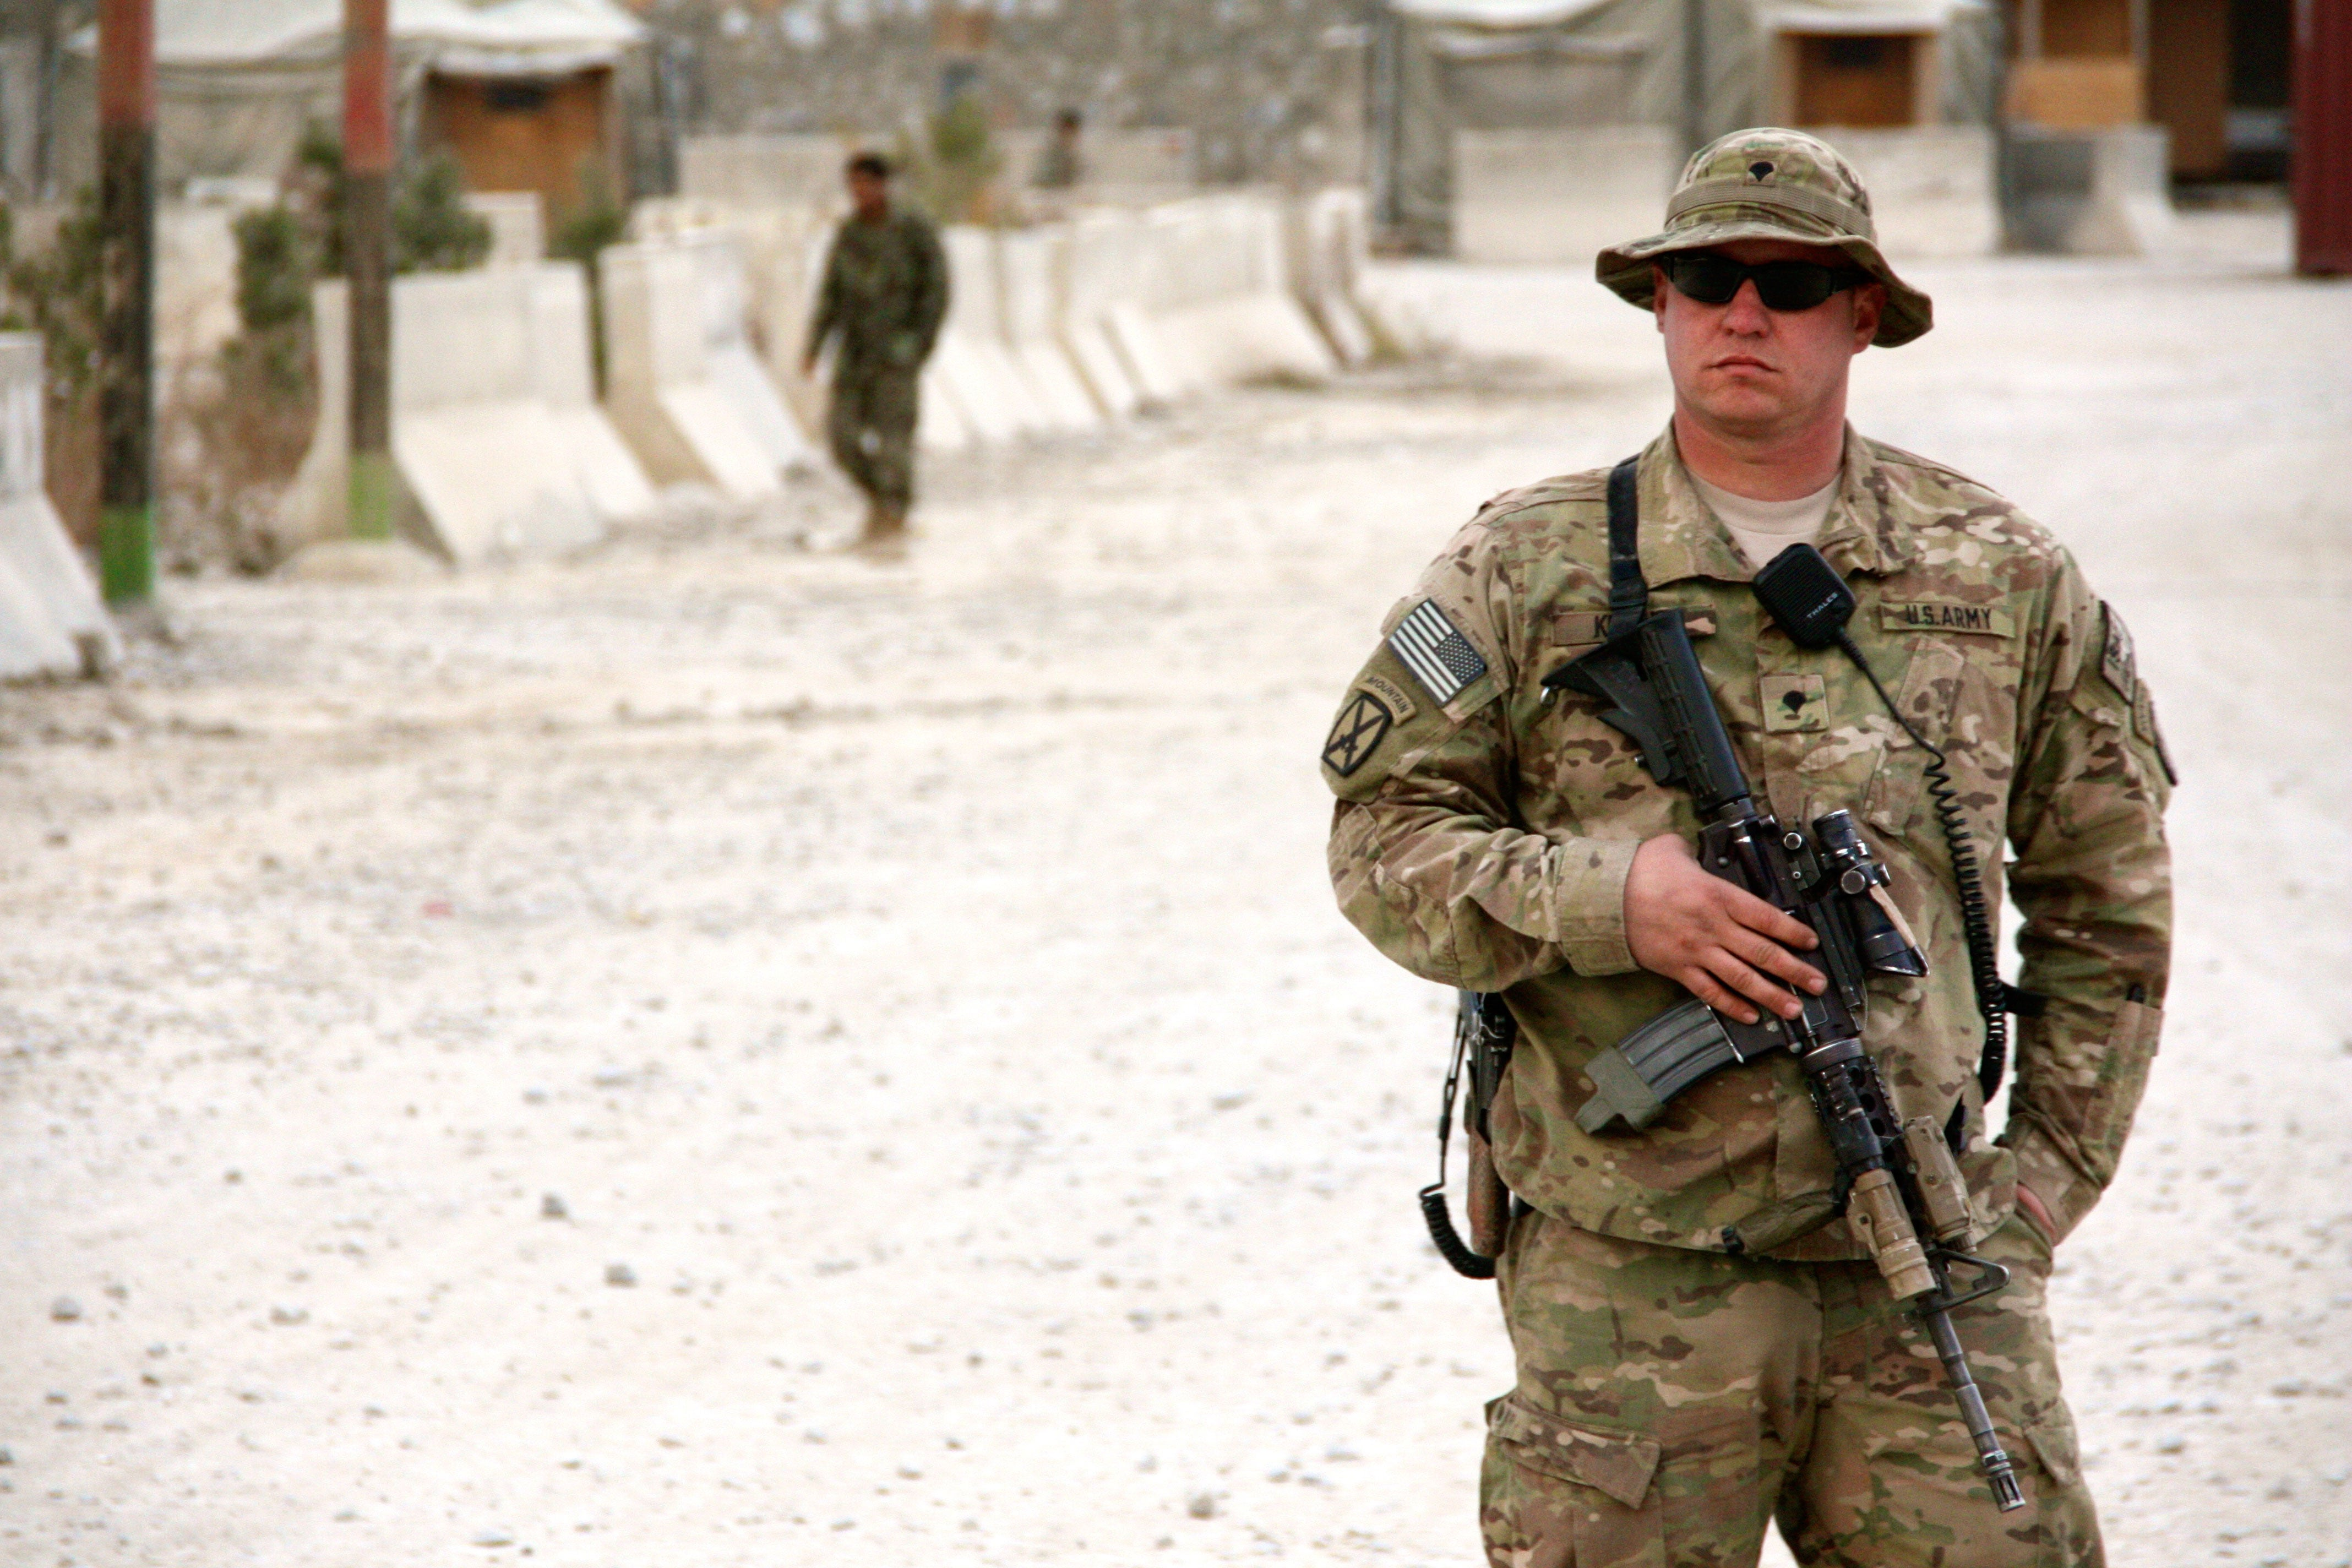 A U.S. Army soldier with an M16 variant called the M4 in Afghanistan.